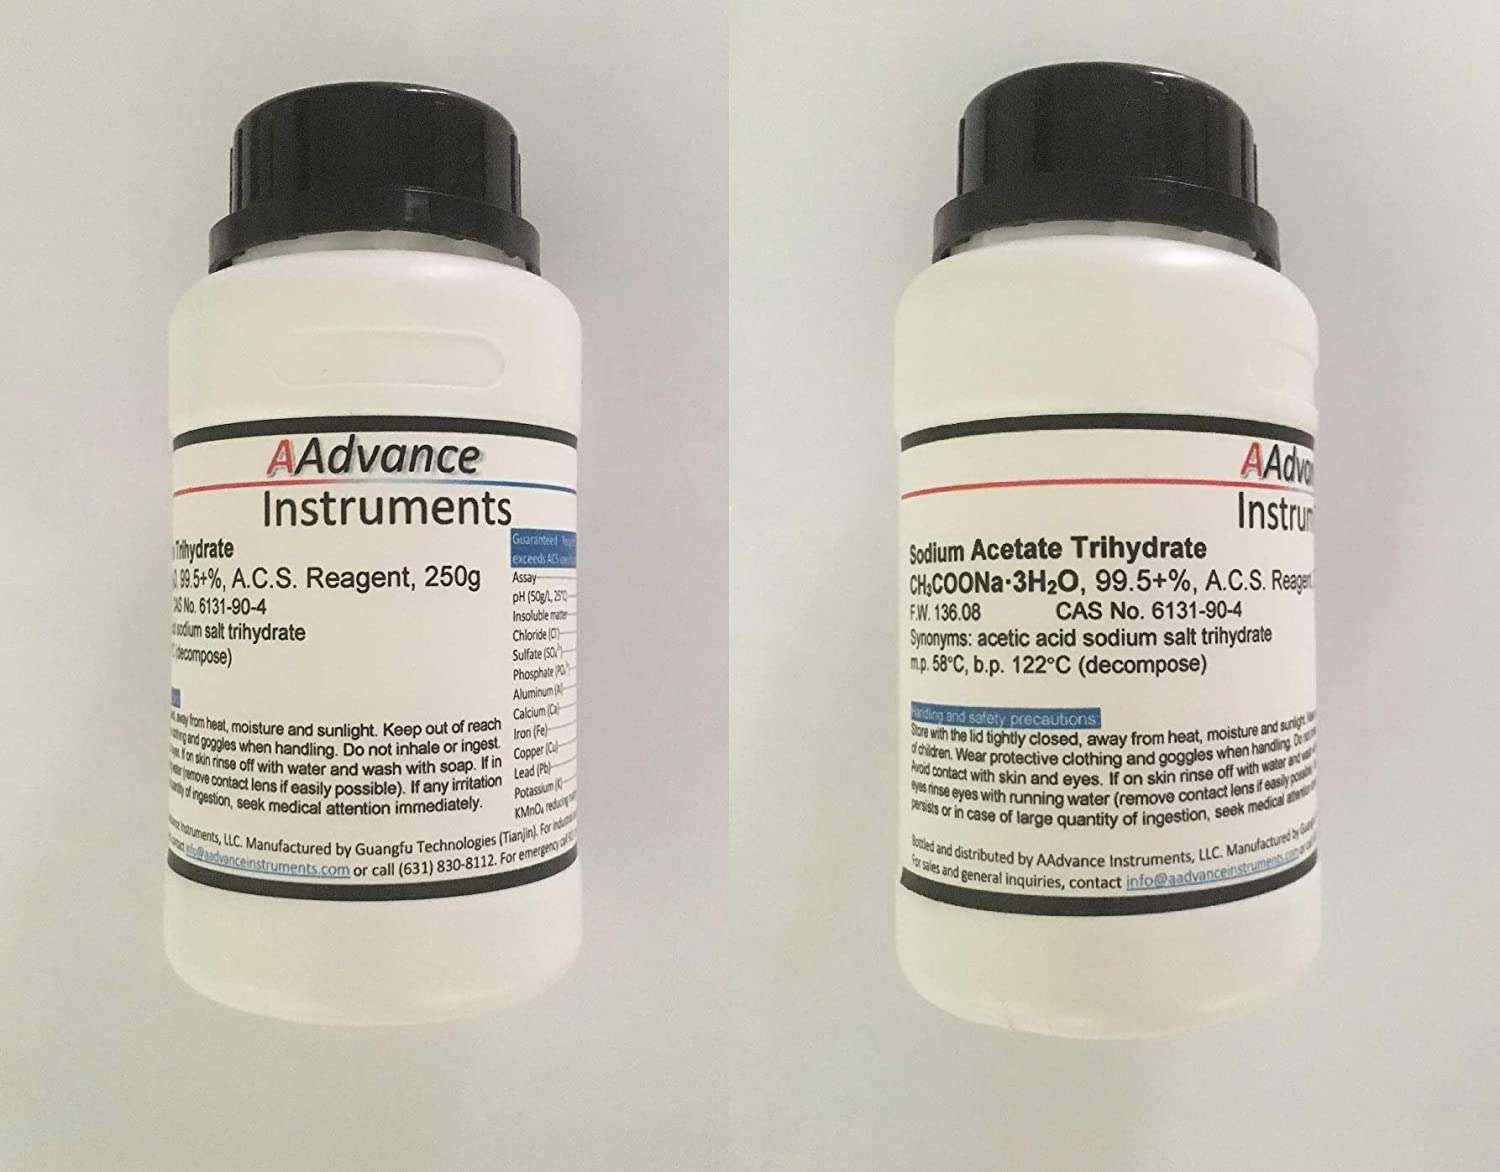 Sodium Acetate Trihydrate CH₃COONa·3H₂O 99.5+% GR ACS Grade CAS No. 6131-90-4 AAdvance Instruments (500 g, Trihydrate)